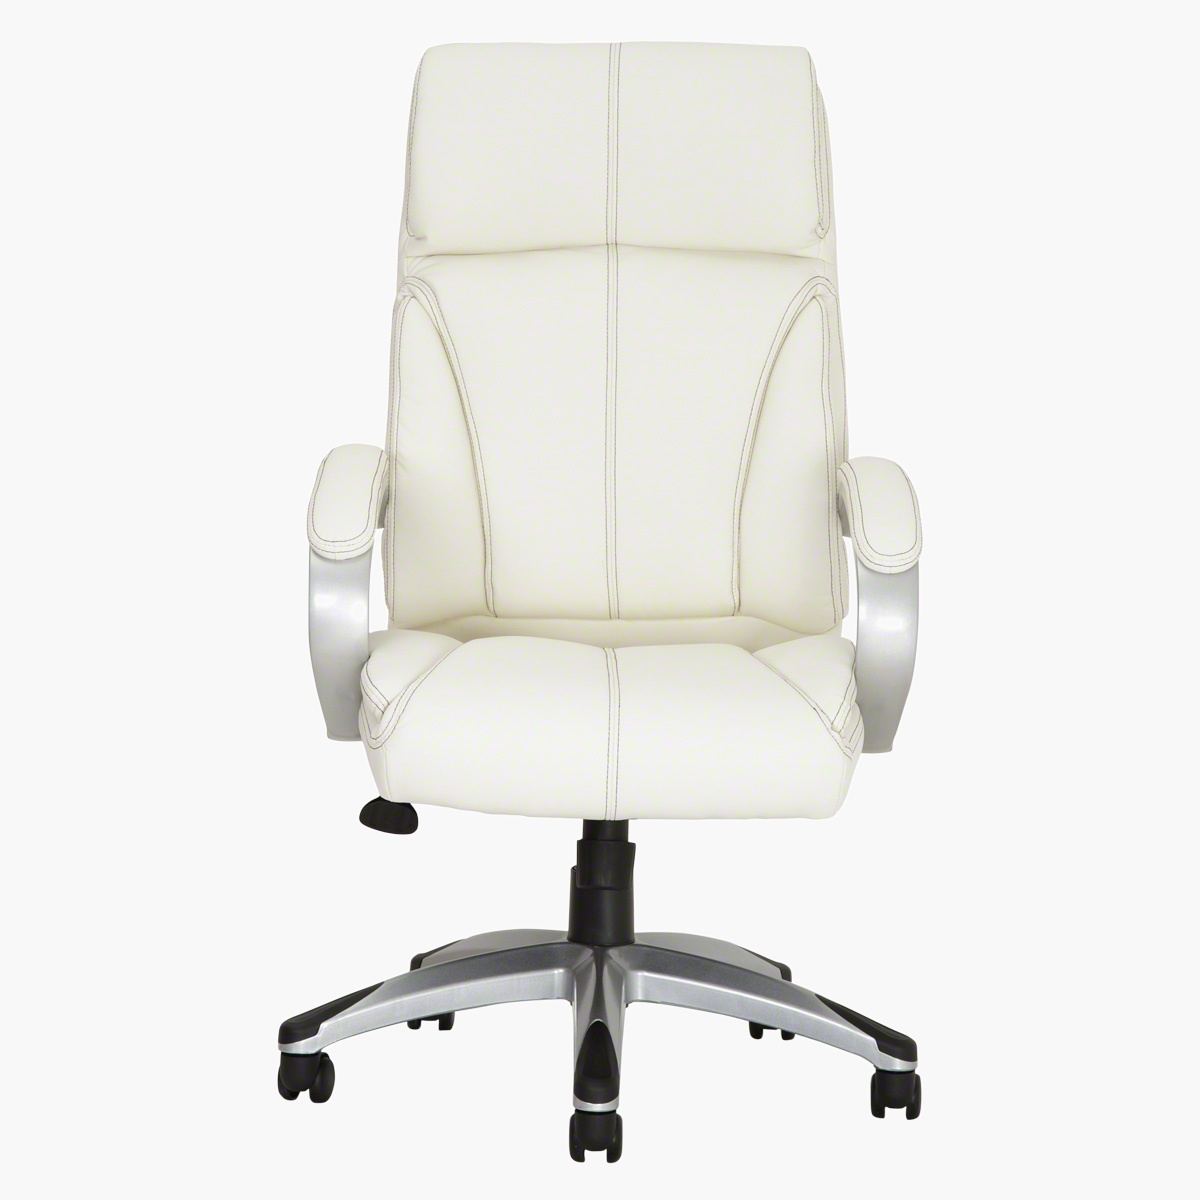 Cruze Office Chair with Adjustable Height